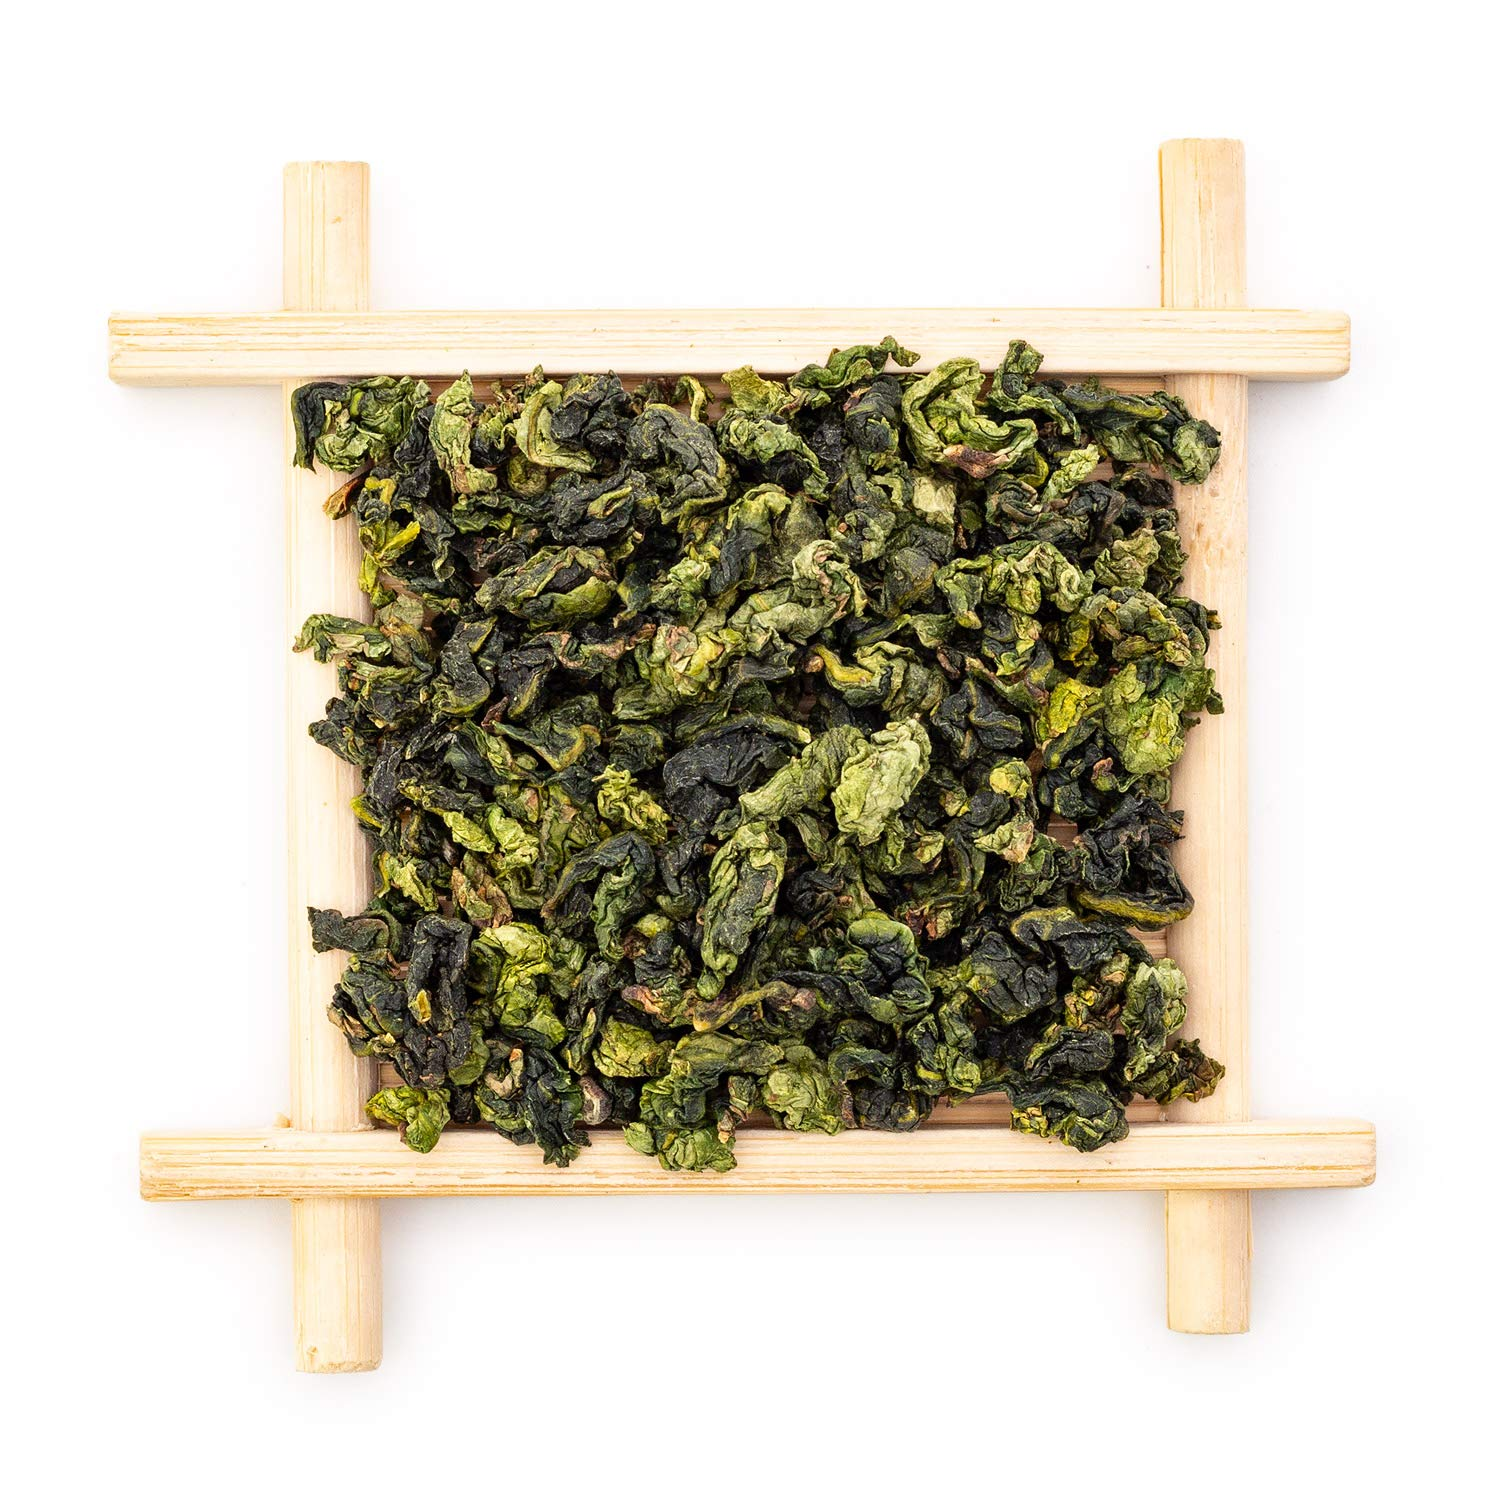 Oriarm 1000g / 35.3oz Anxi Tie Guan Yin Oolong Tea Loose Leaf - Chinese Iron Goddess of Mercy Oolong Green Tea Leaves - Naturally High Mountain Grown